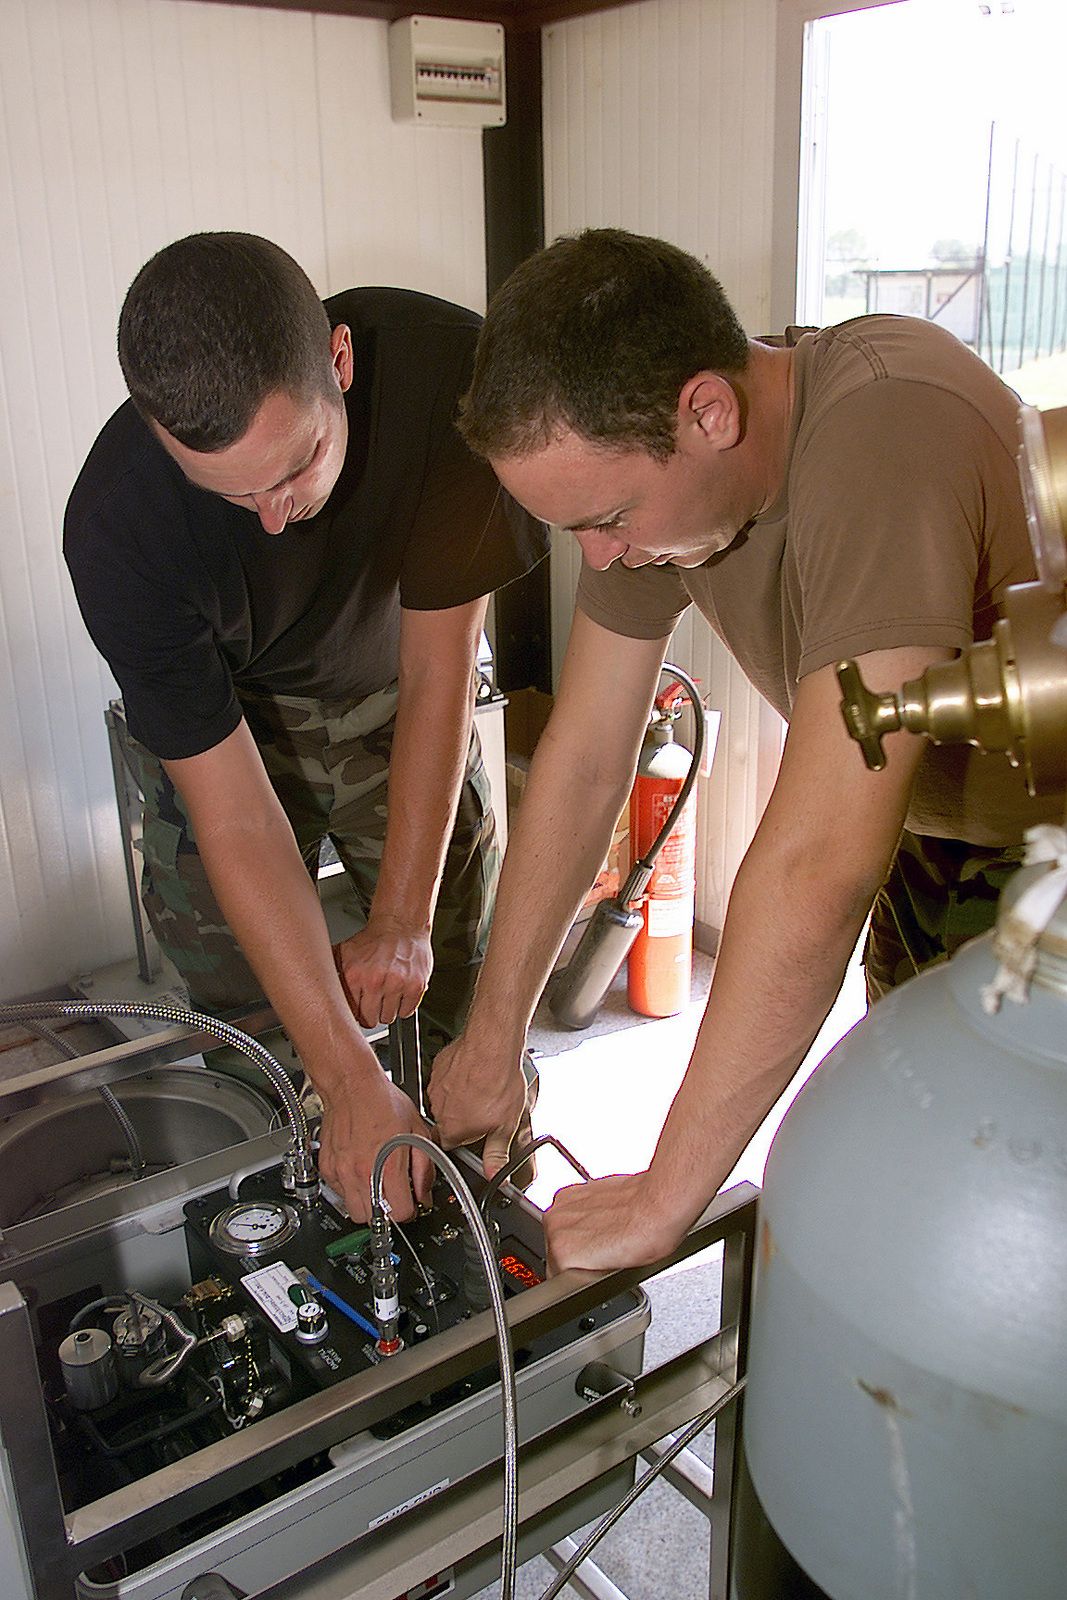 US Air Force (USAF) STAFF Sergeant (SSGT) Craig Ratliff (left) and USAF SSGT Morgan Ard, both Weapons Specialists assigned to the 831st Munitions Support Squadron (MSS), operate a vacuum pump during a weapons shipment, at Ghedi Air Base (AB), Italy